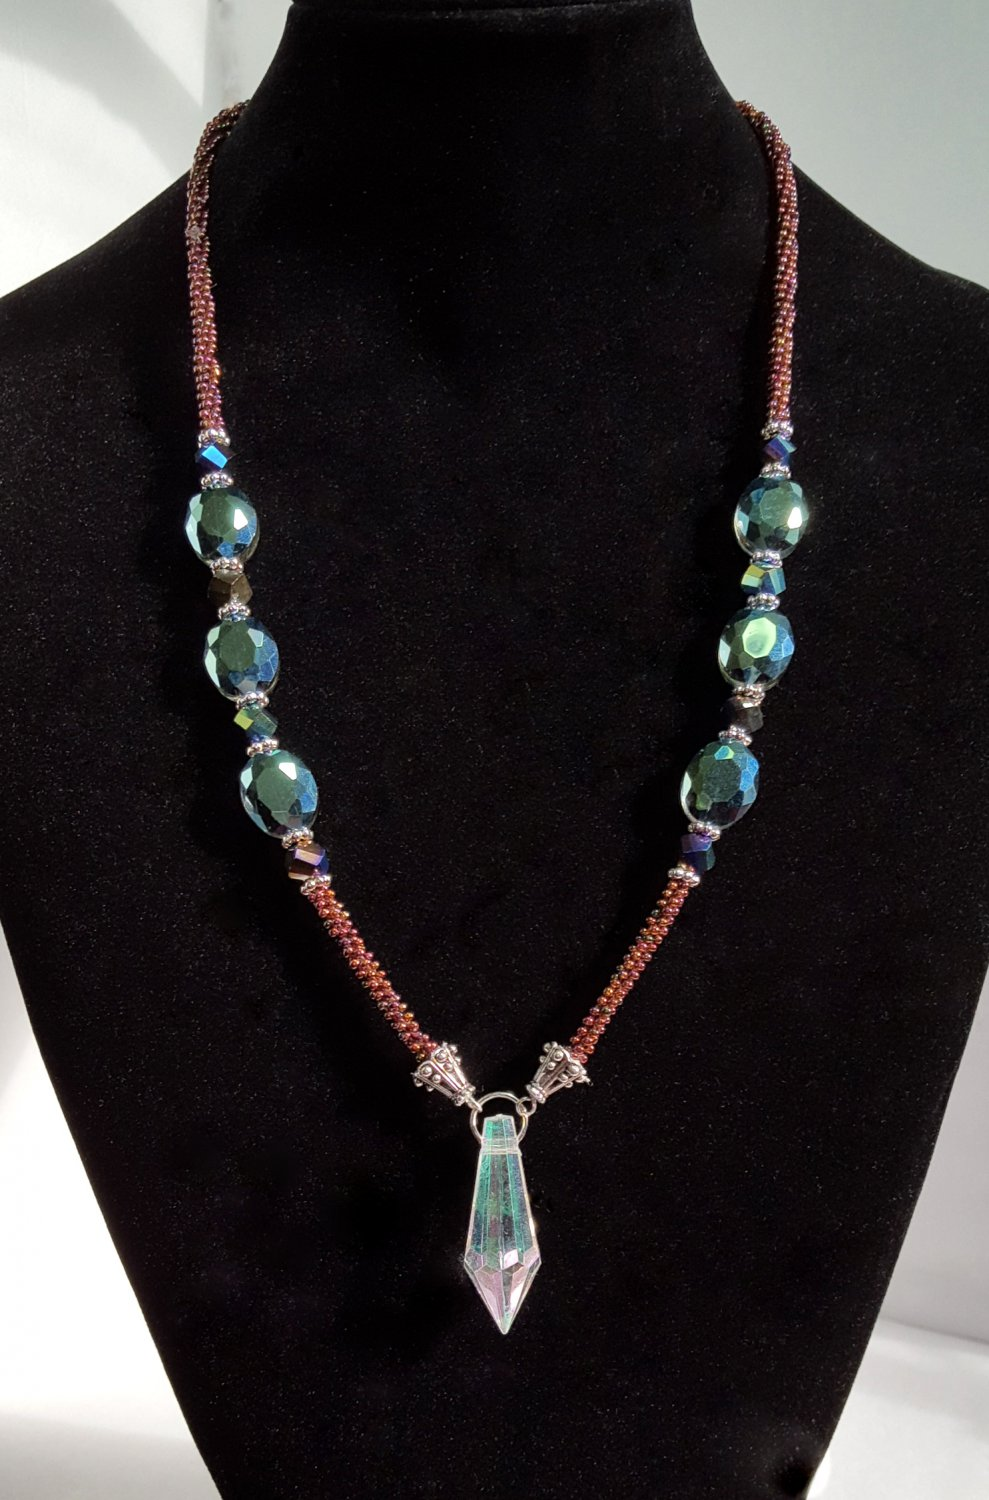 Iridescent Spiked Kumihimo Braided Necklace